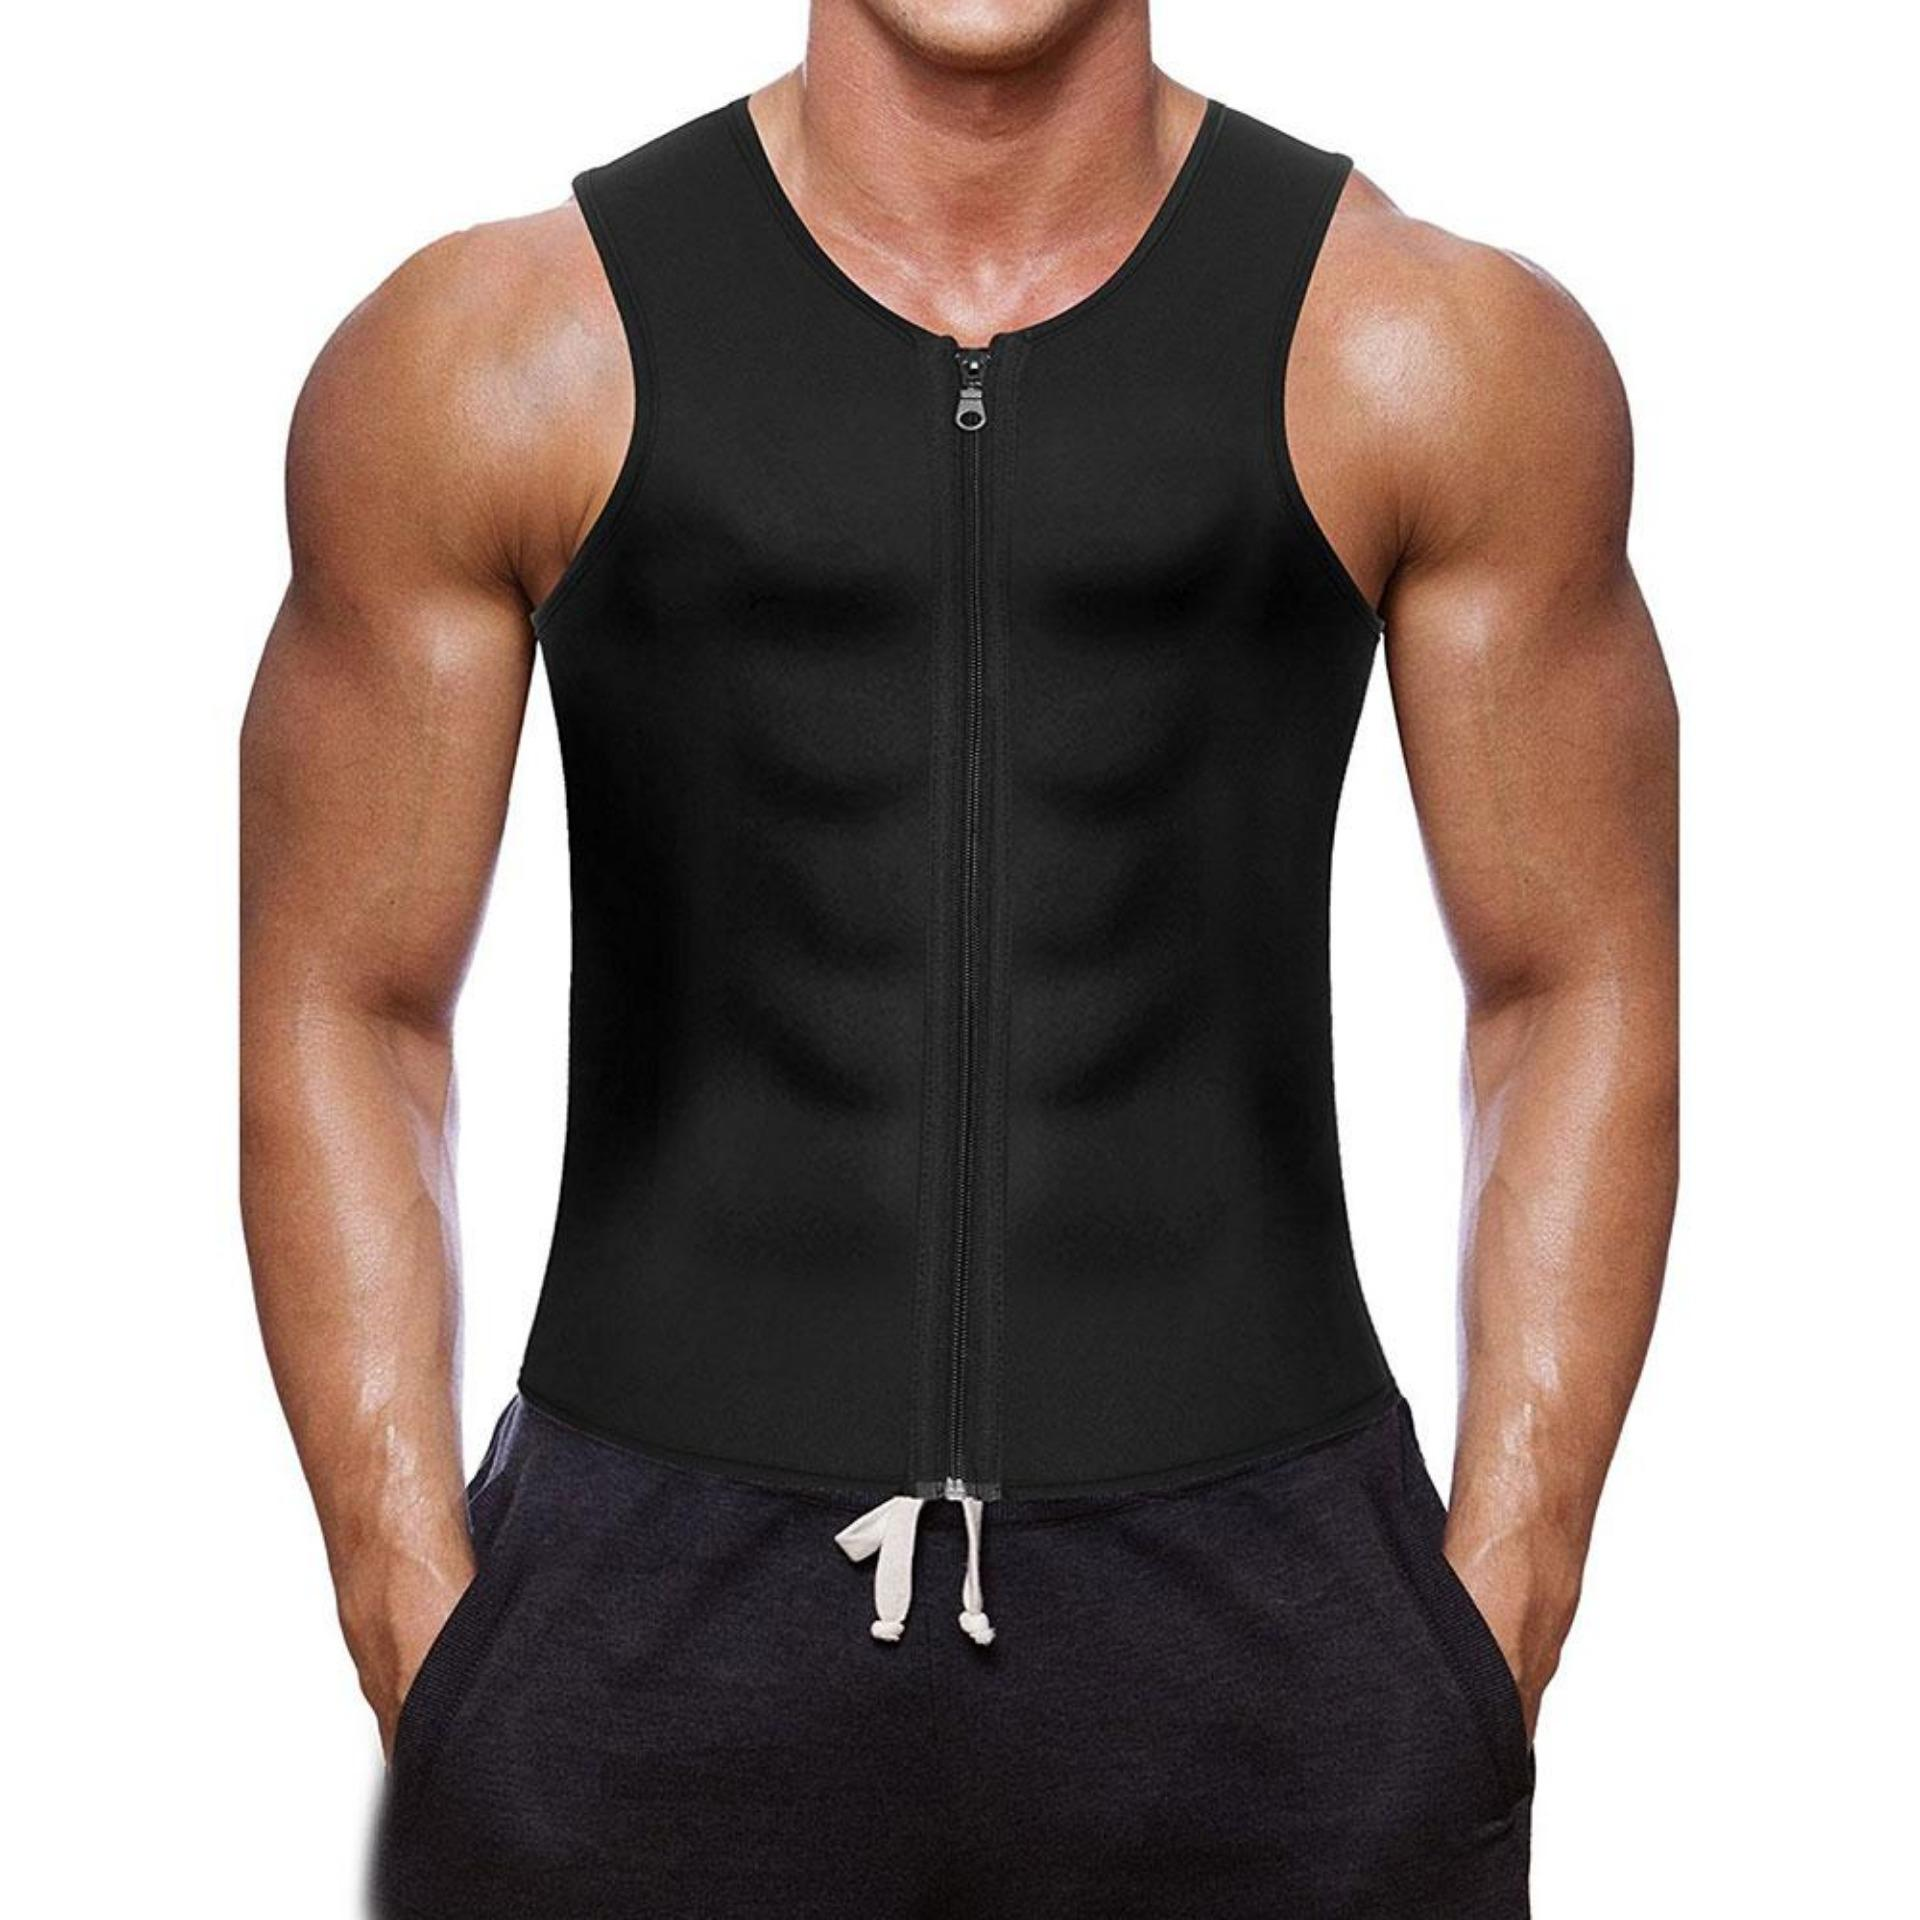 8cb915236 NiceToEmpty Professional Men Waist Trainer Vest for Weight Loss Hot  Neoprene Corset Body Shaper Zipper Sauna